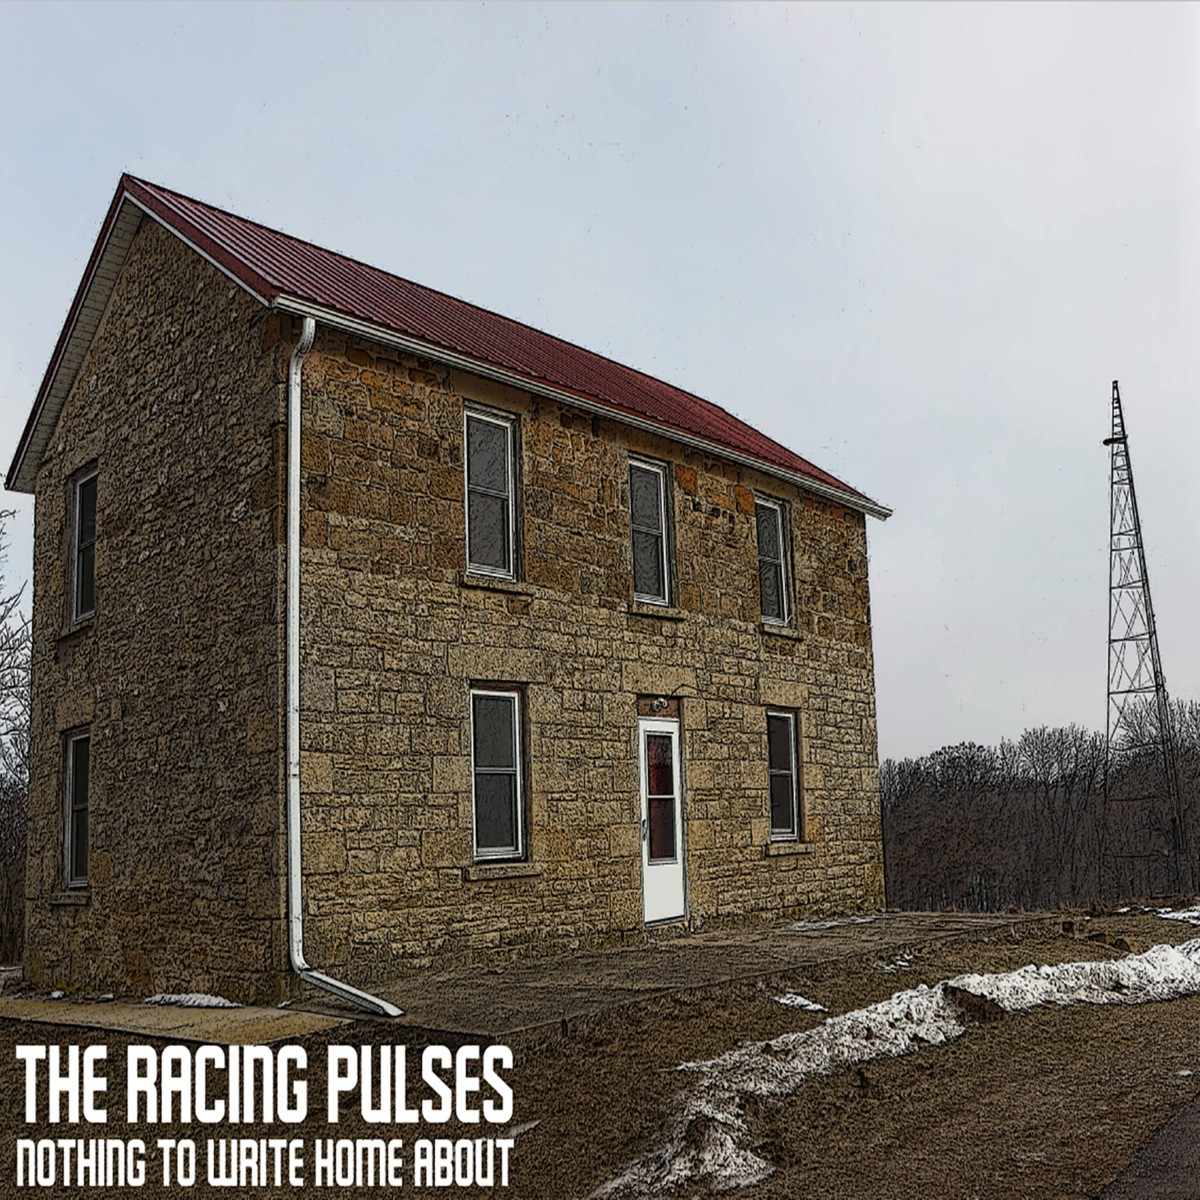 The Racing Pulses - The Racing Pulses vibrant new release Nothing To Write Home About